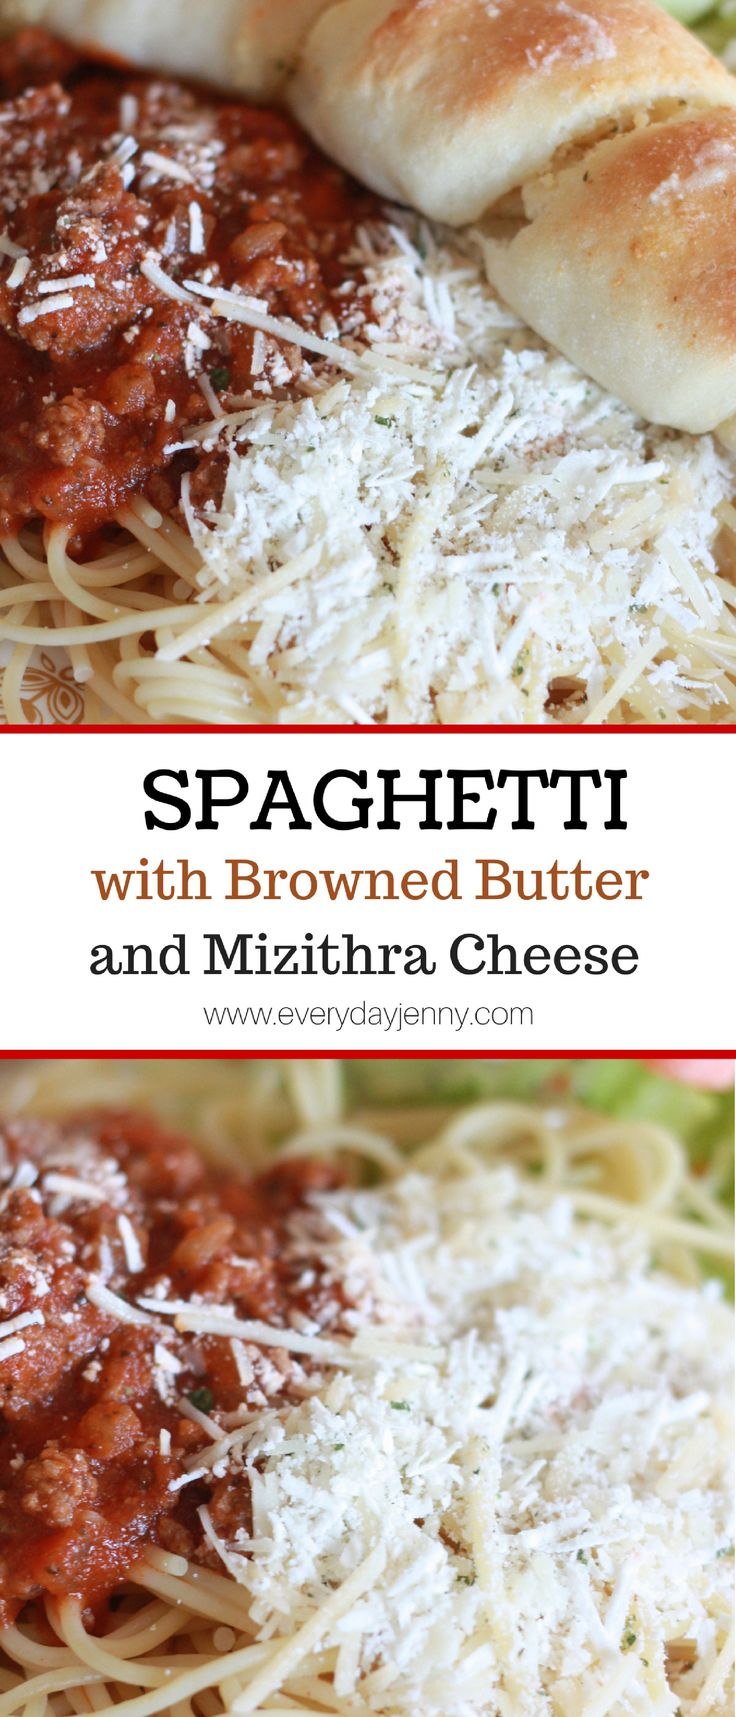 Spaghetti with browned butter and mizithra cheese is one of our favorites! Recipe on everydayjenny.com